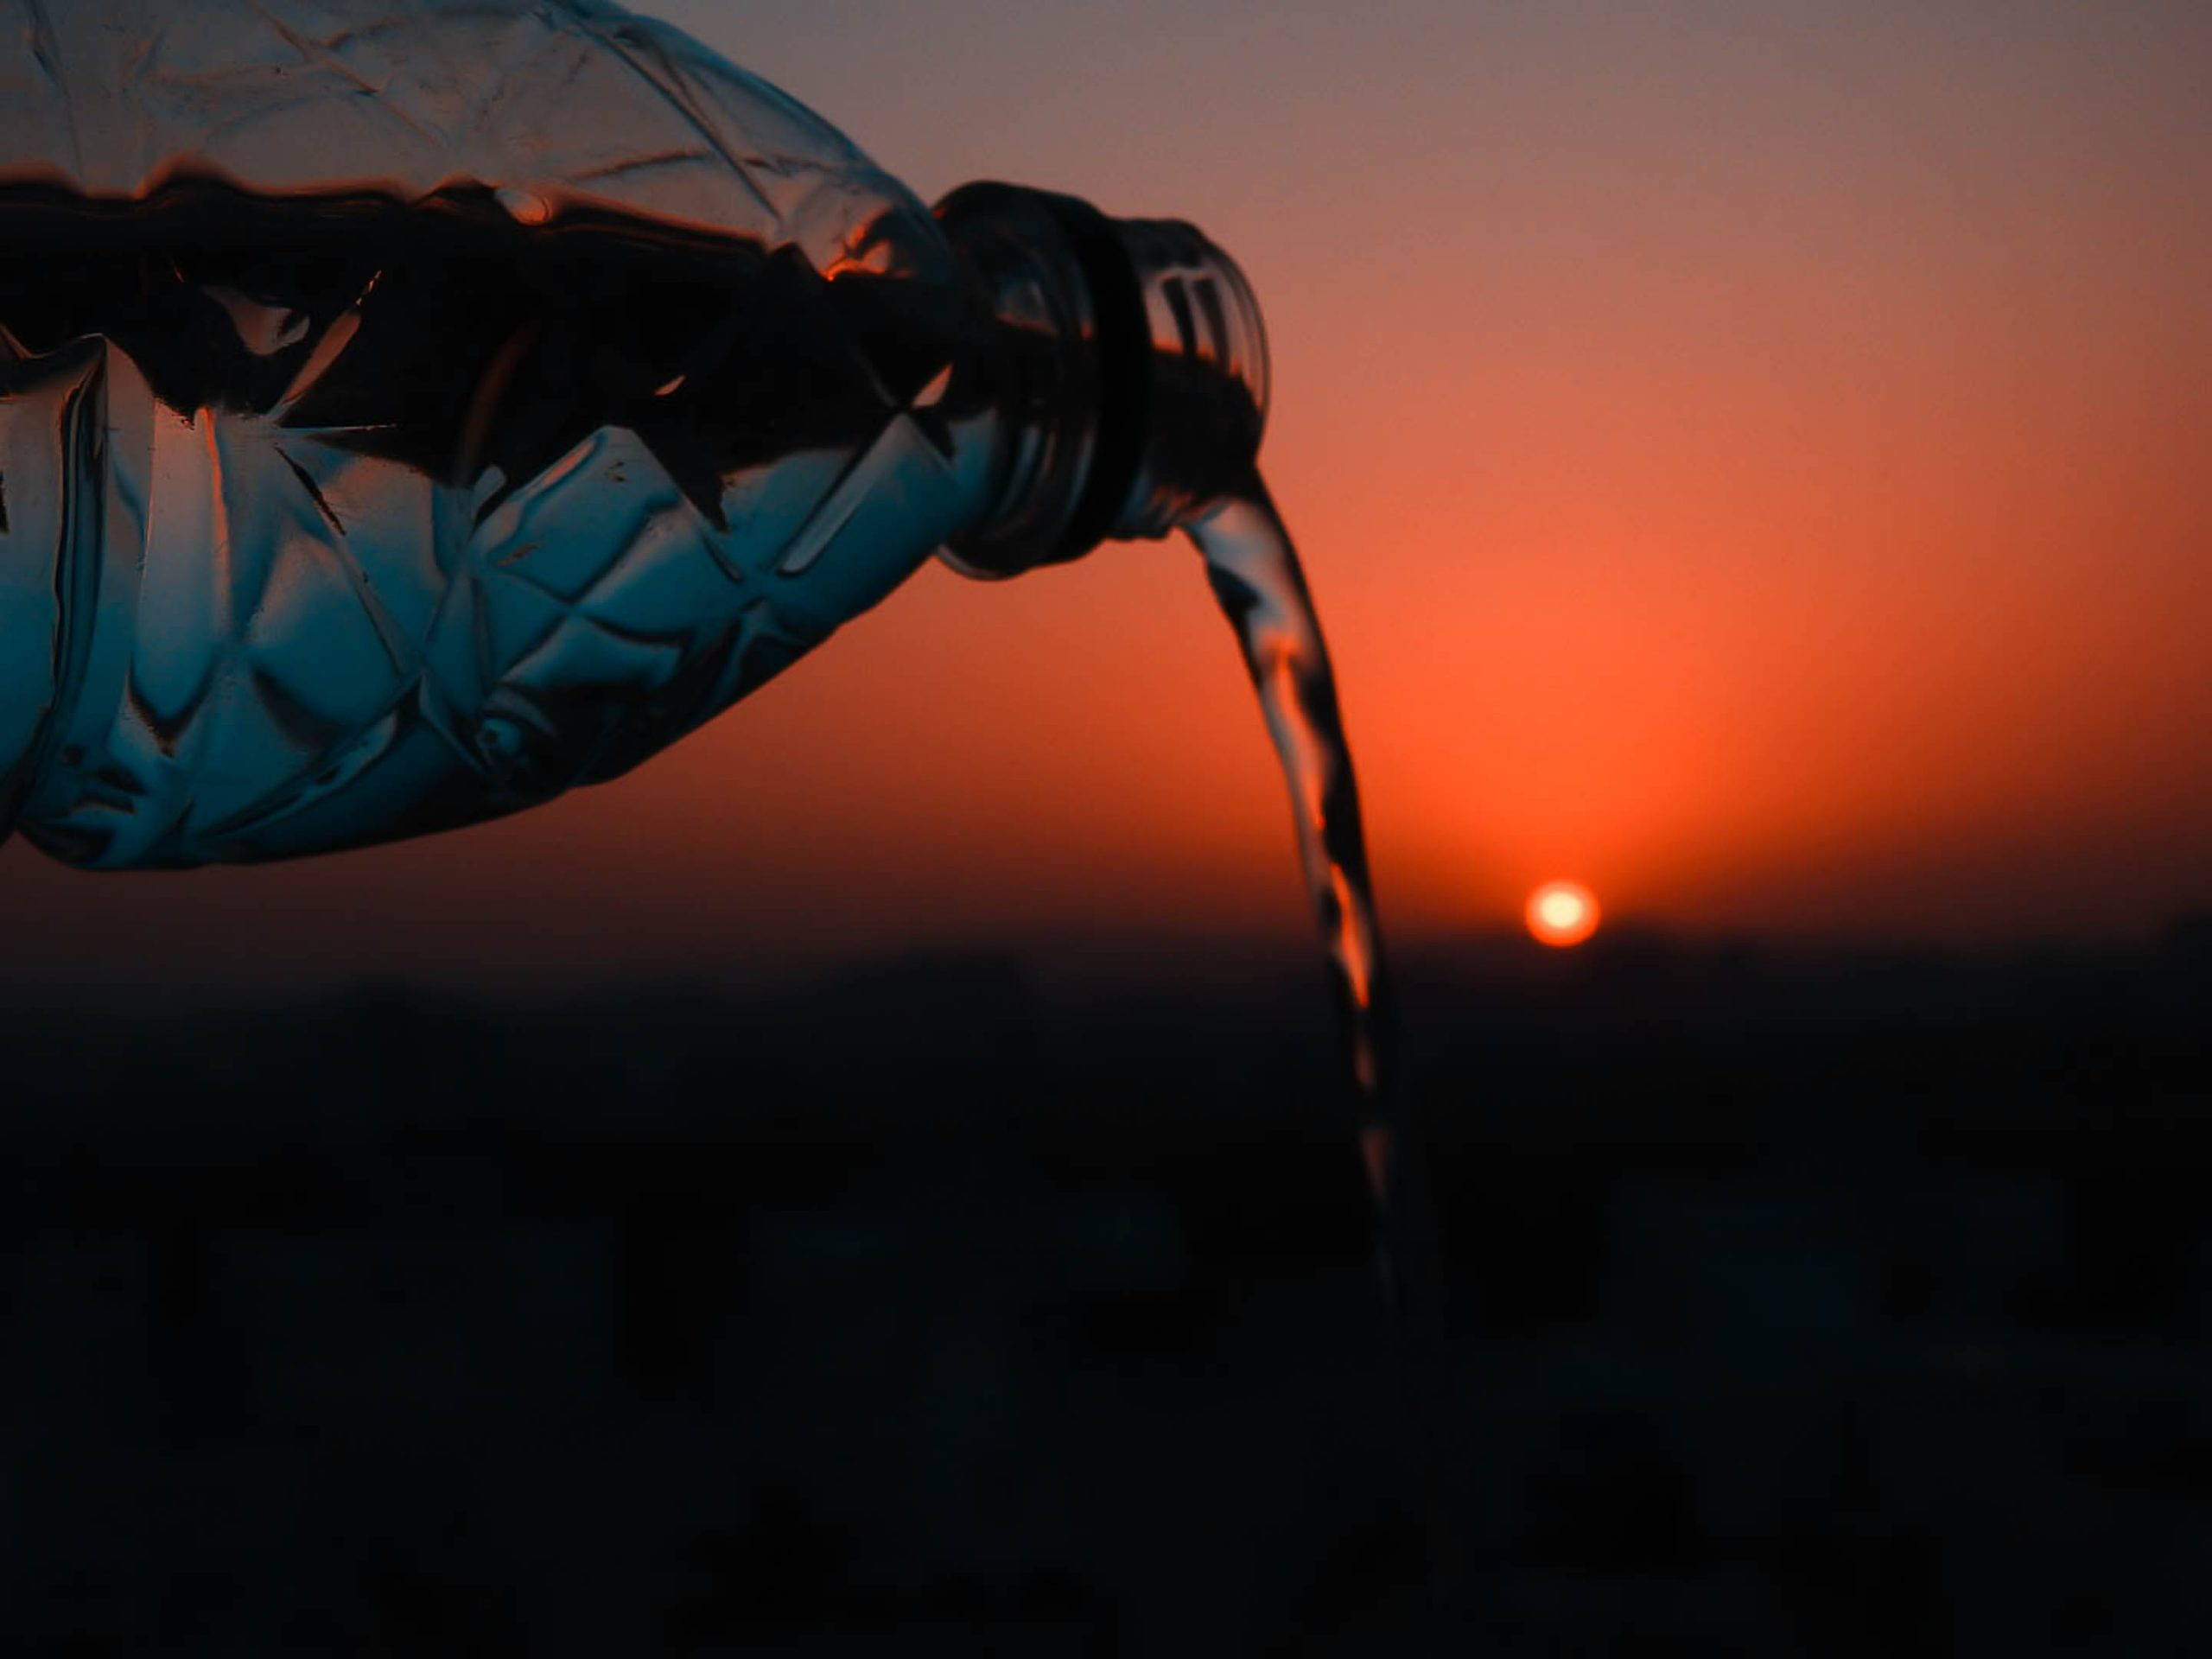 Pouring water during sunset